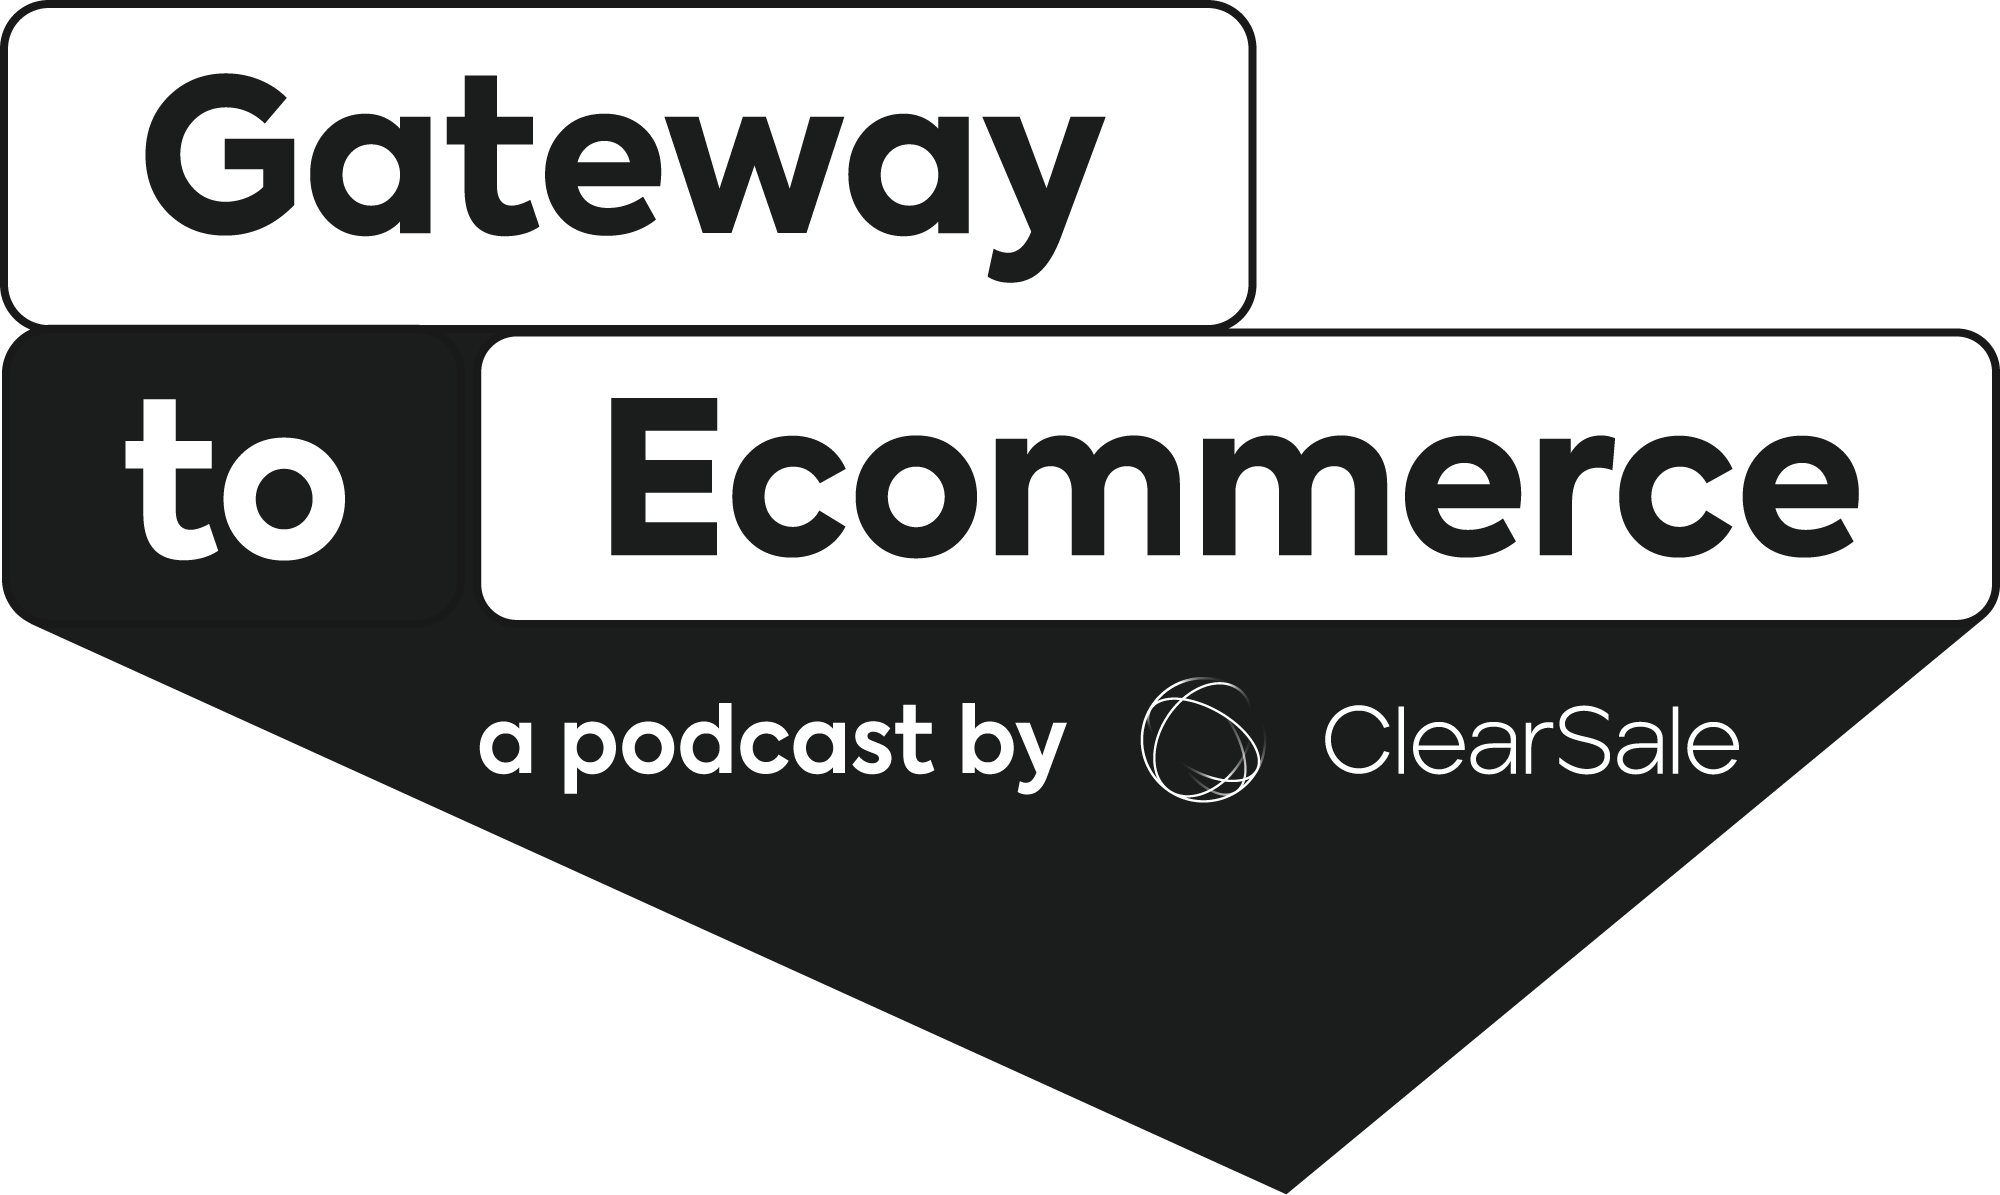 Gateway to E-Commerce a Podcast by ClearSale